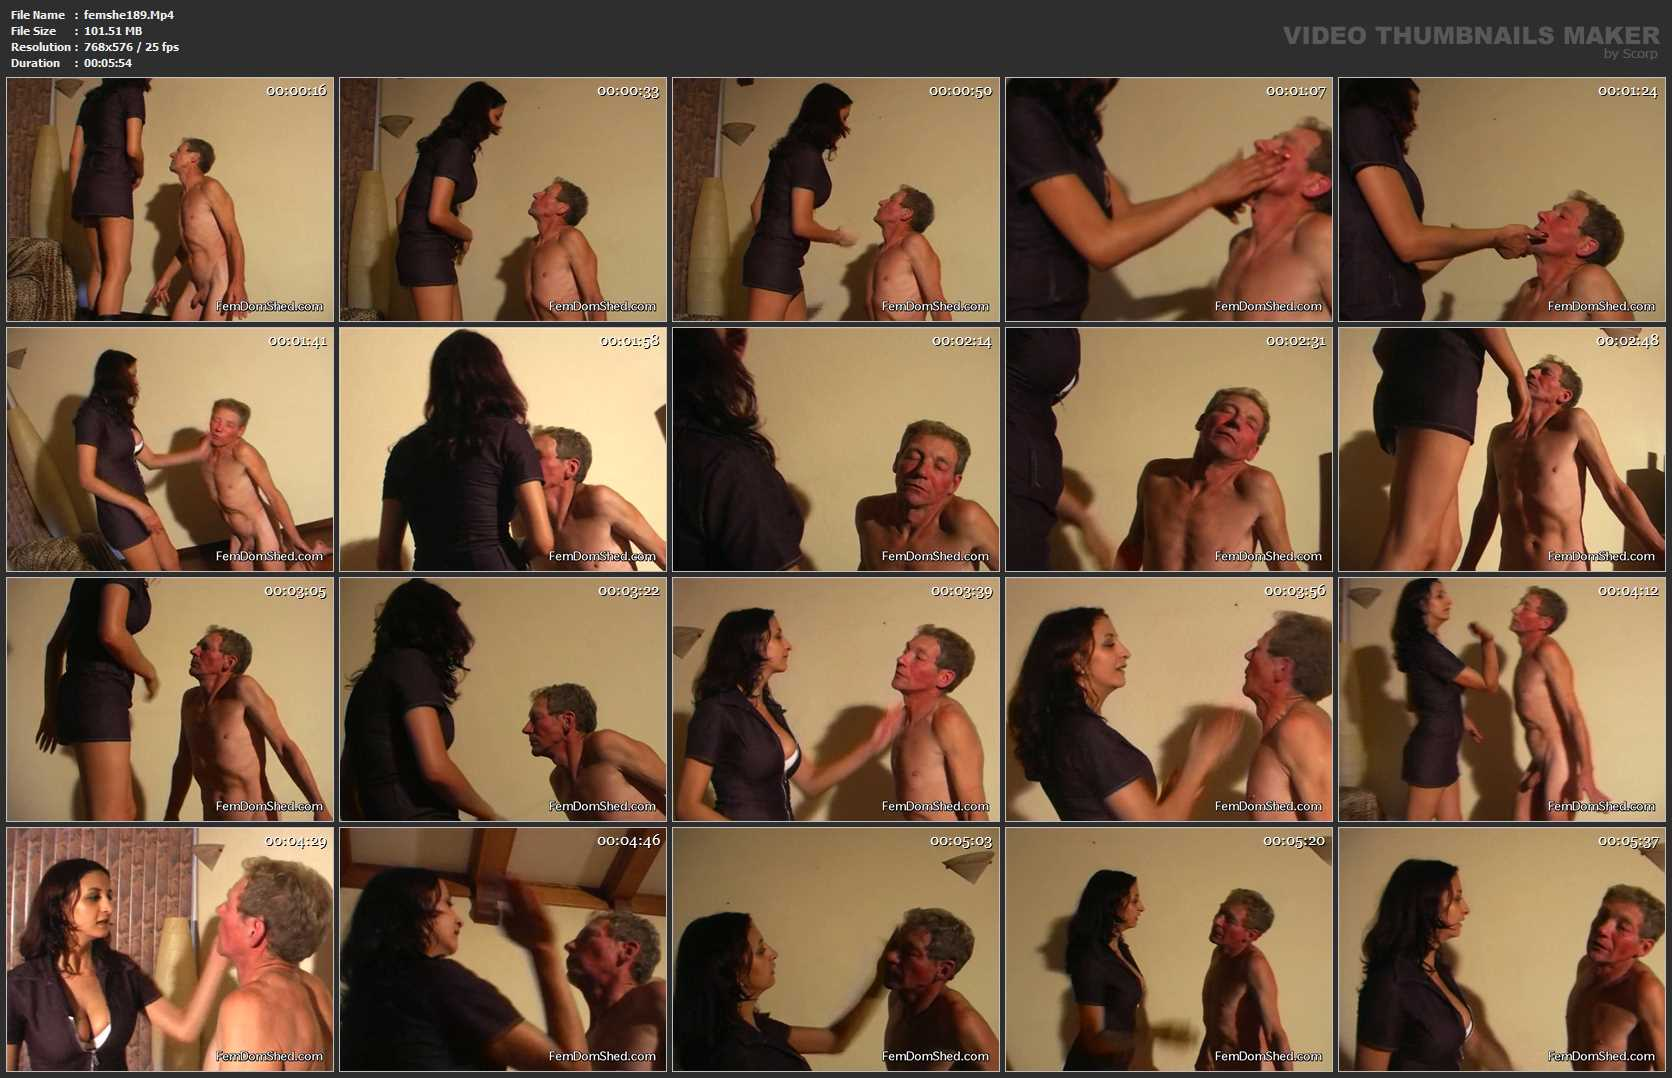 Mistress Evil In Scene: Face Slapping Lessons - FEMDOMSHED - SD/576p/MP4